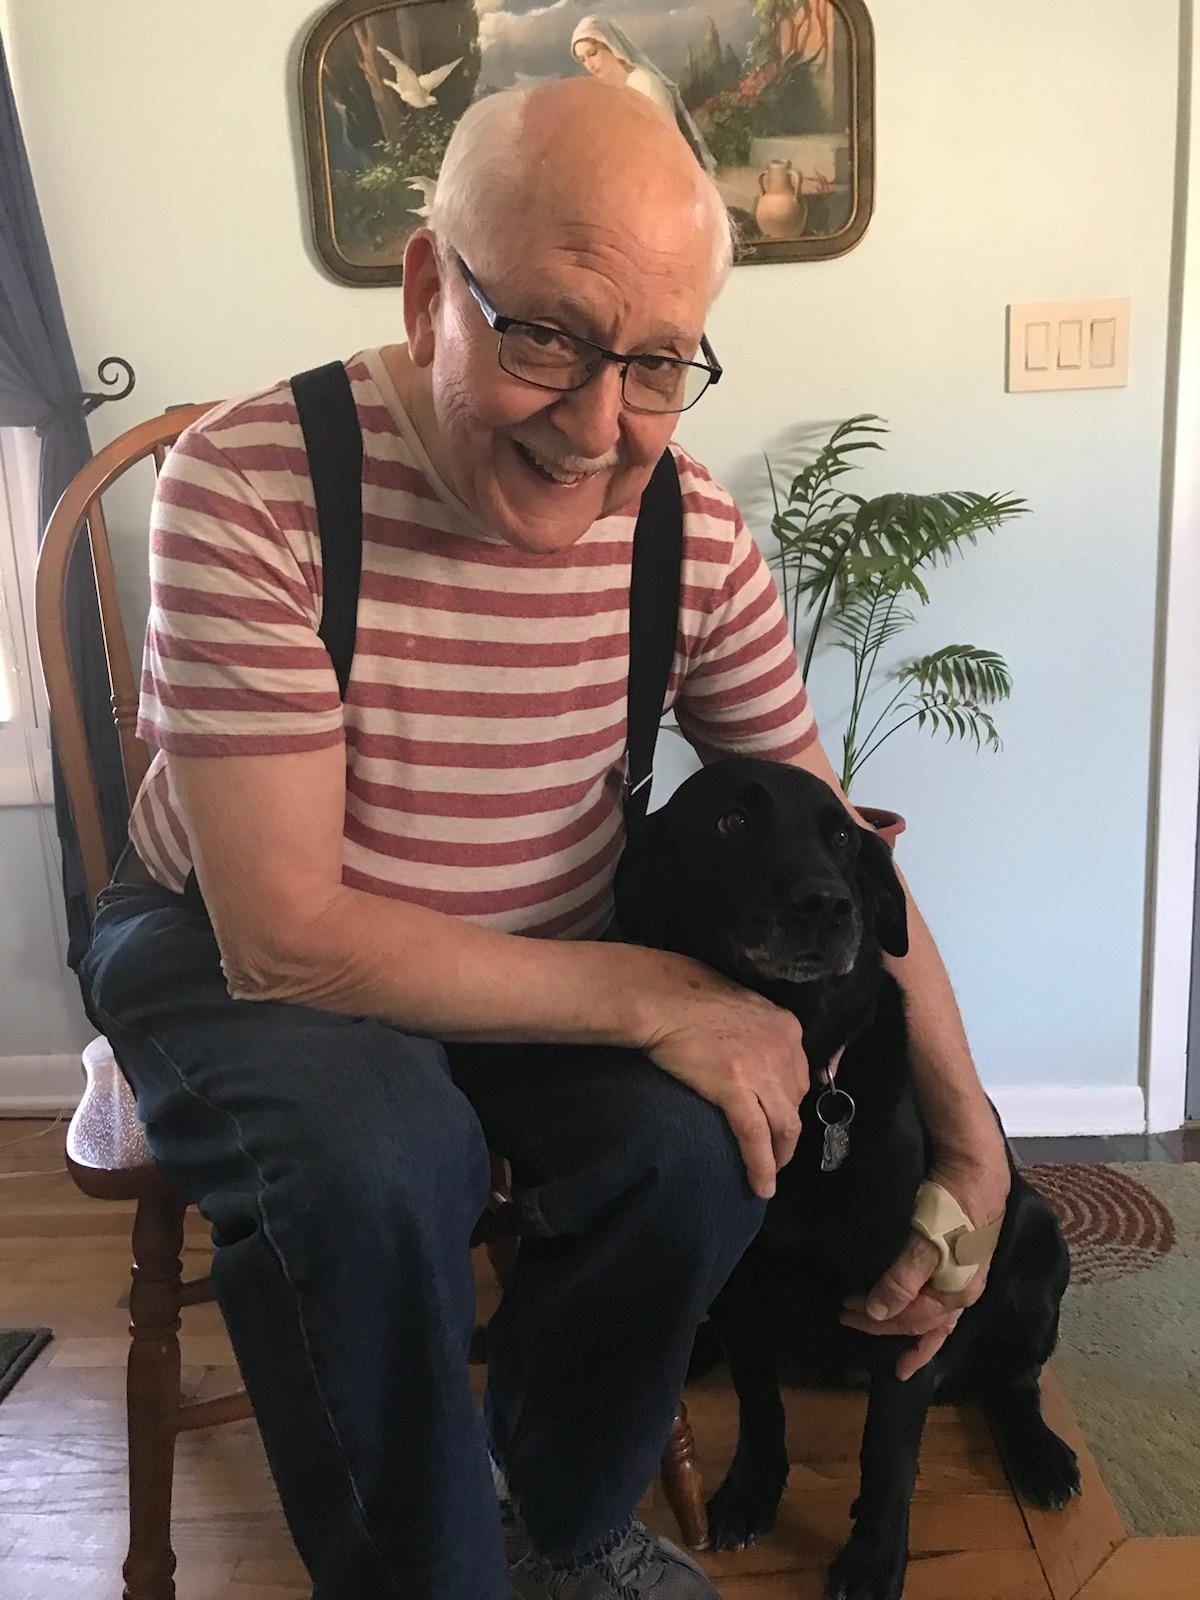 an older man with glasses and wearing  a red and white striped shirt  smiles as he sits in a chair petting a black dog sitting beside him.